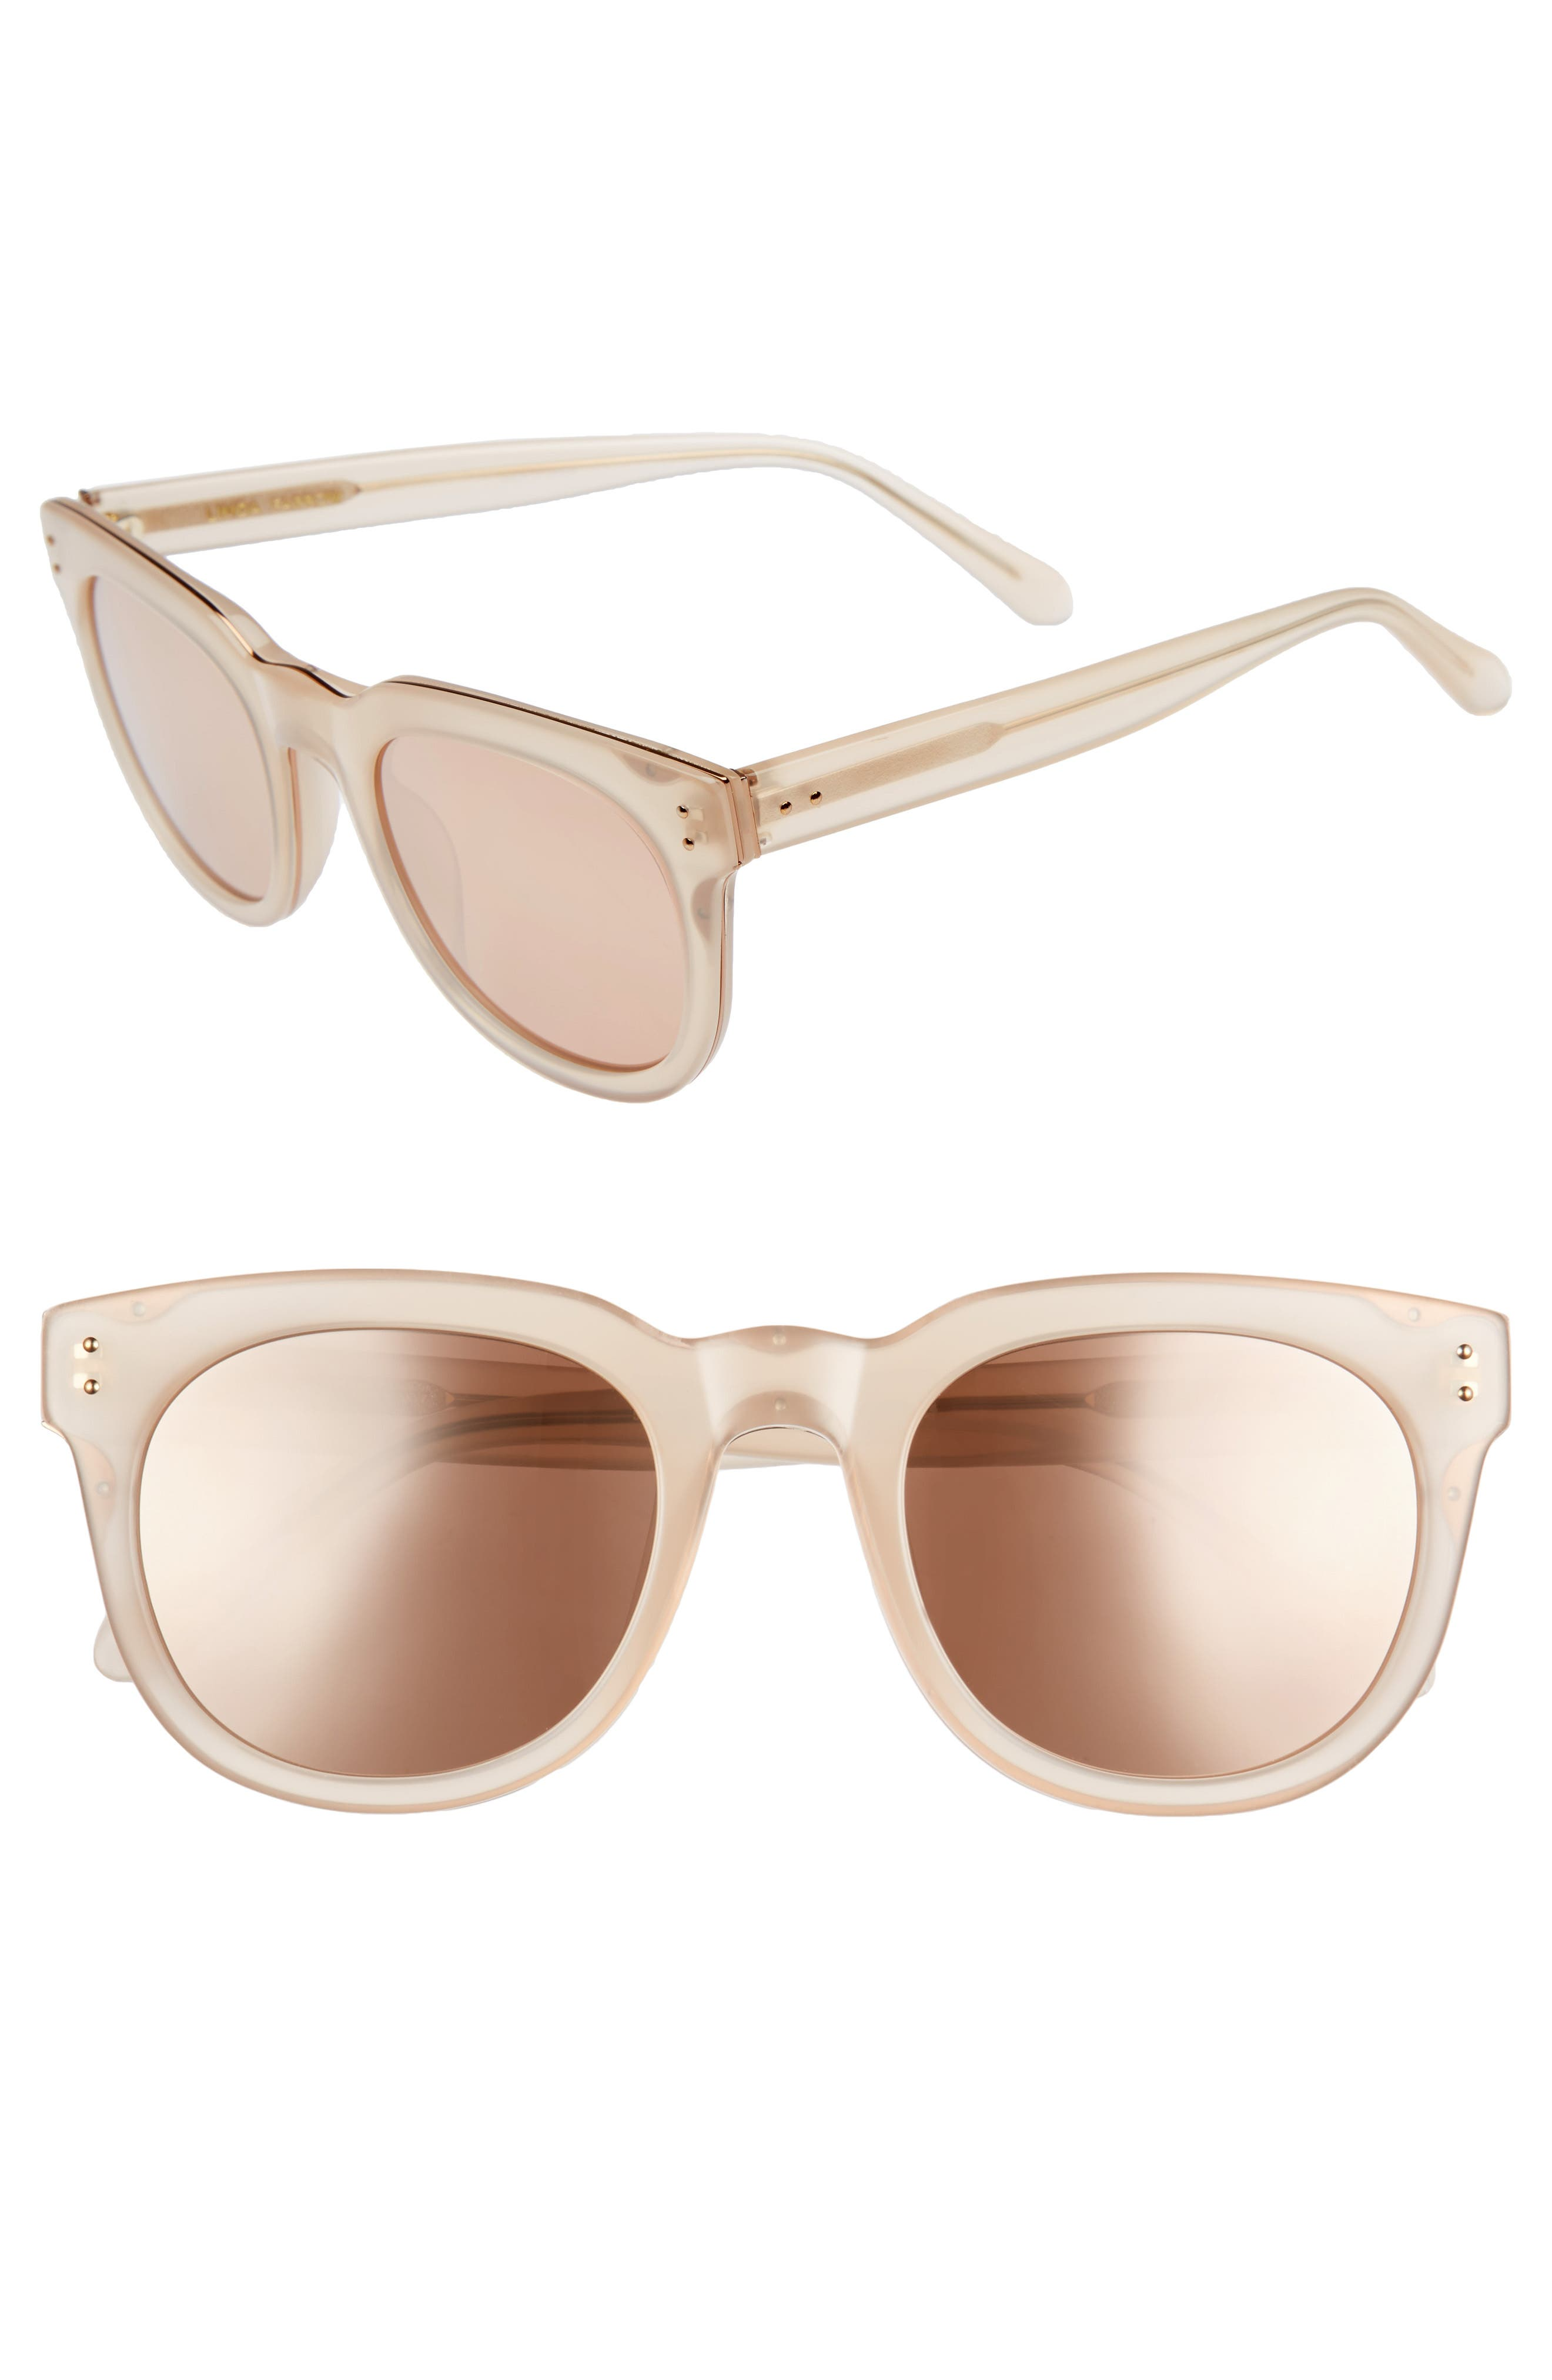 50mm D-Frame Mirrored Sunglasses,                         Main,                         color, Milky Peach/ Rose Gold